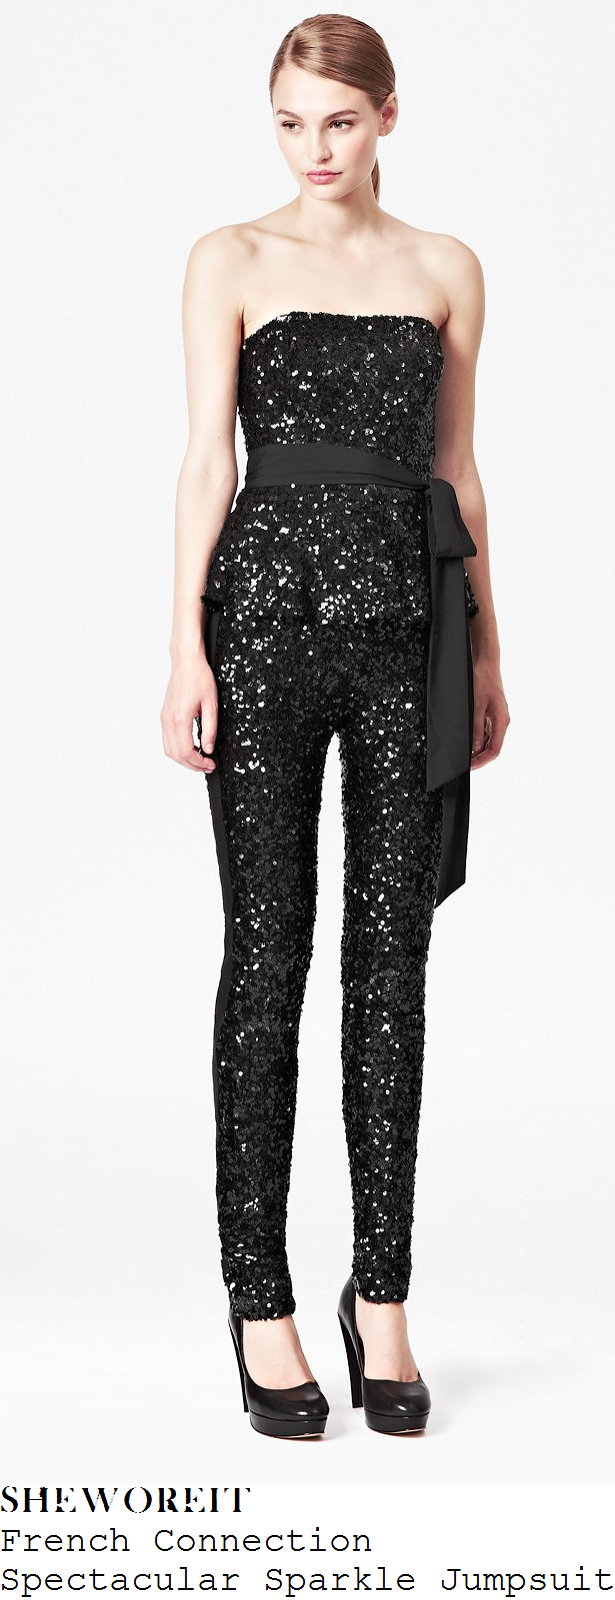 36131b6cab5 Tamera Foster's French Connection Spectacular Sparkle Black All Over Sequin  Embellished Strapless Sleeveless Slim Fit Jumpsuit With Peplum Waist & Tie  Bow ...